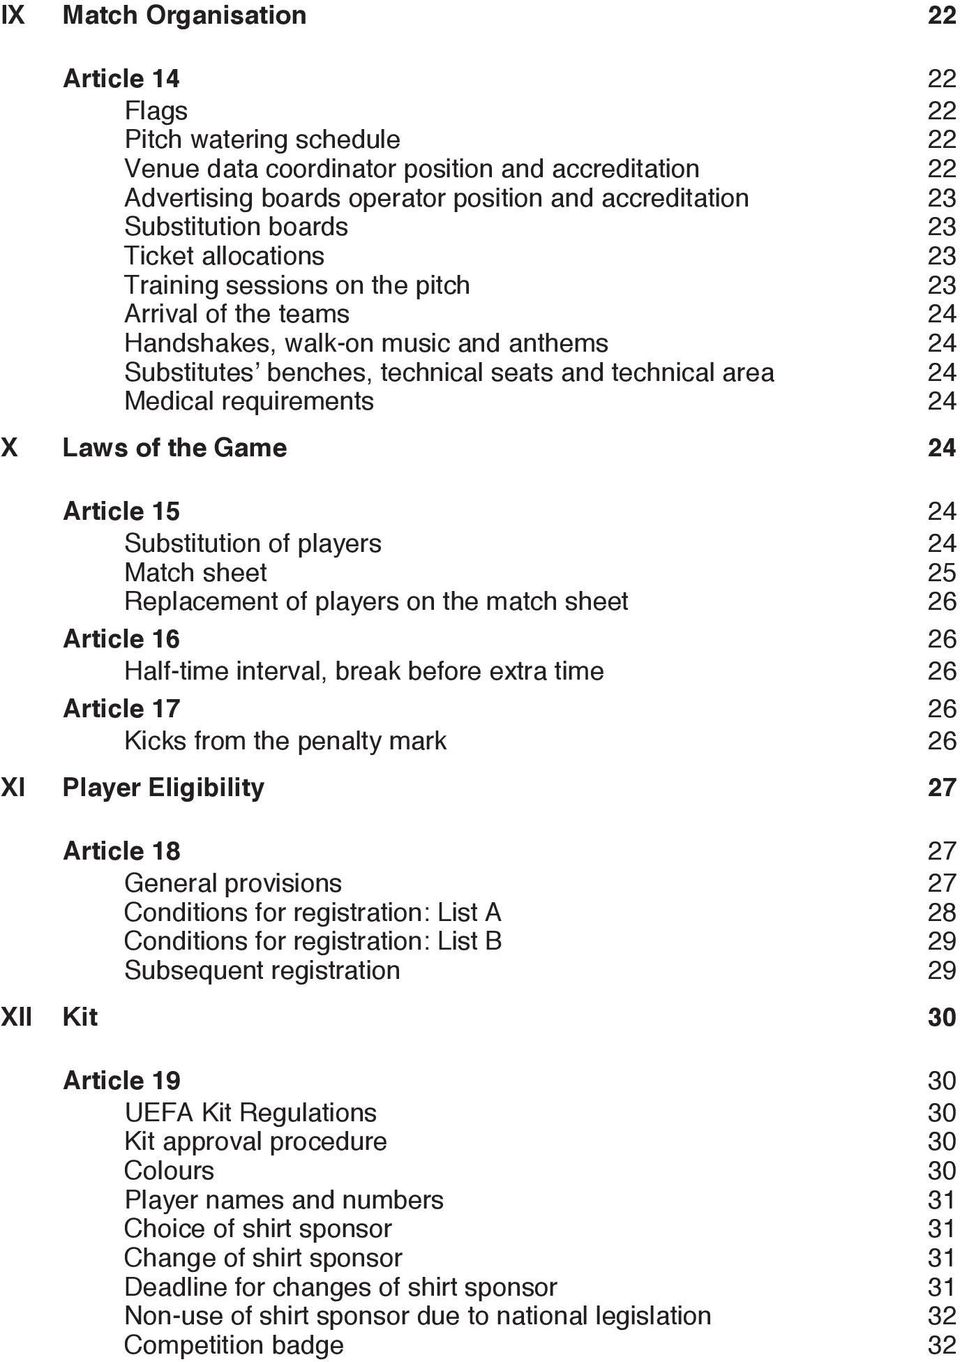 requirements 24 X Laws of the Game 24 Article 15 24 Substitution of players 24 Match sheet 25 Replacement of players on the match sheet 26 Article 16 26 Half-time interval, break before extra time 26